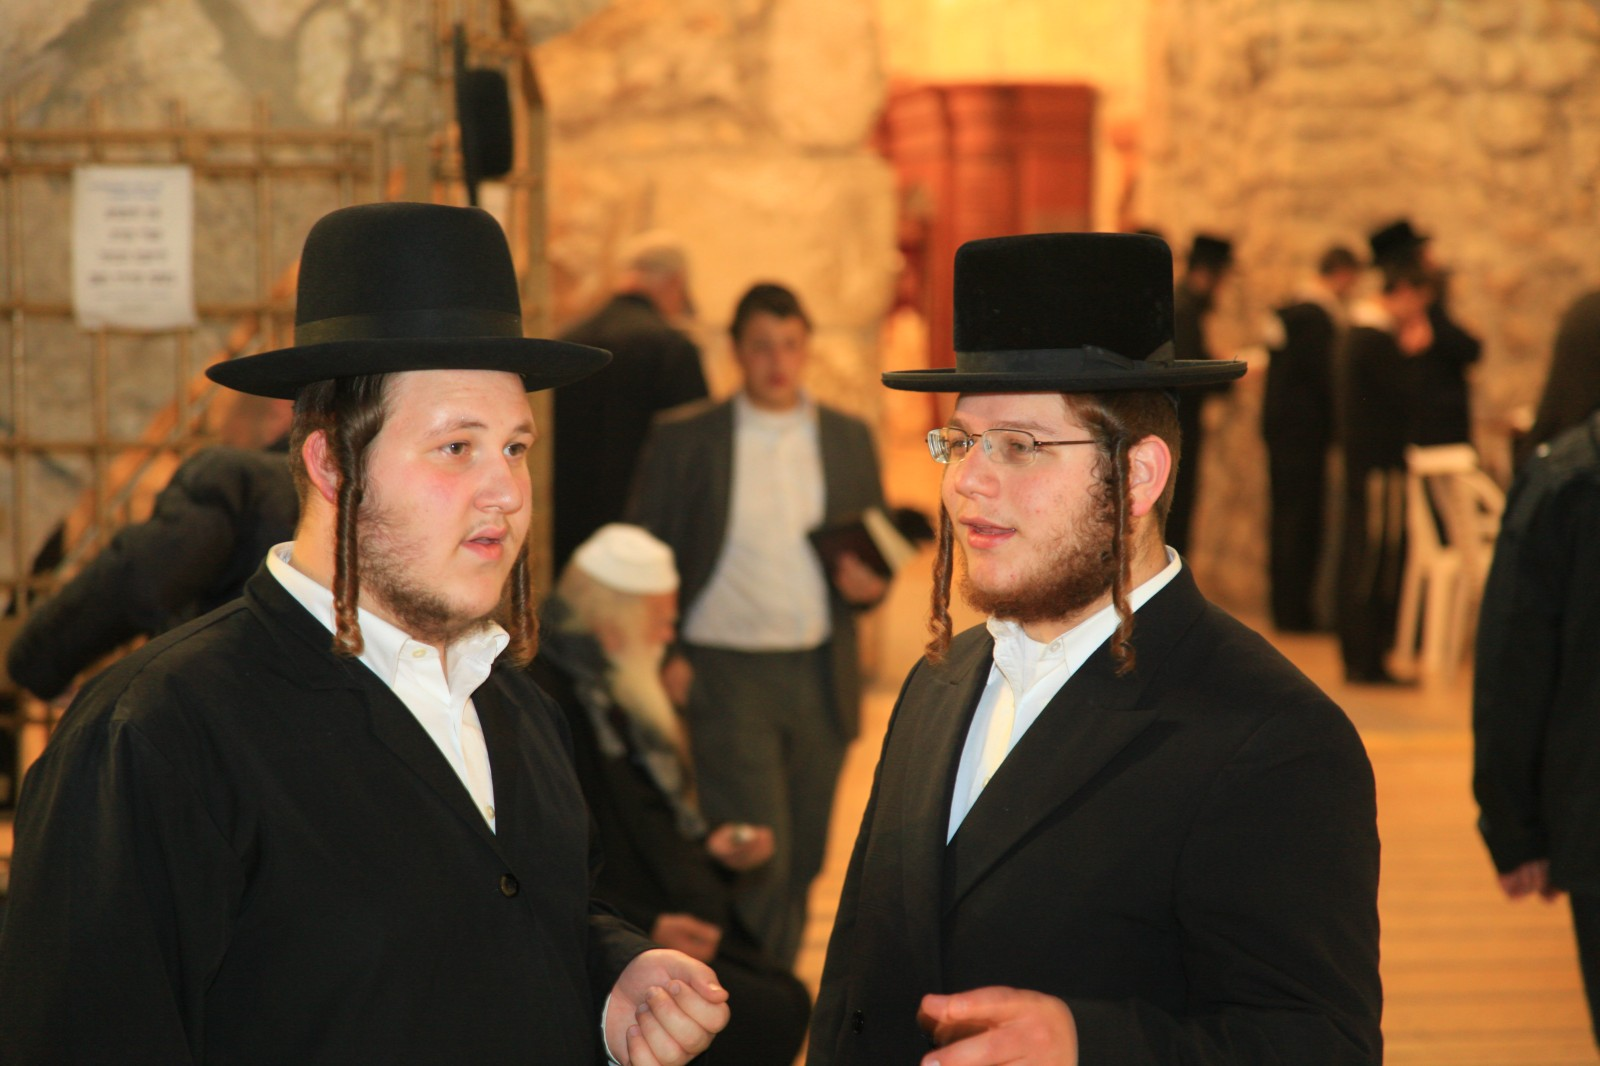 The Torah said that you should not cut off hair next to your ears. Proper Jews follow this advice resulting in stylish sidelocks called Payot